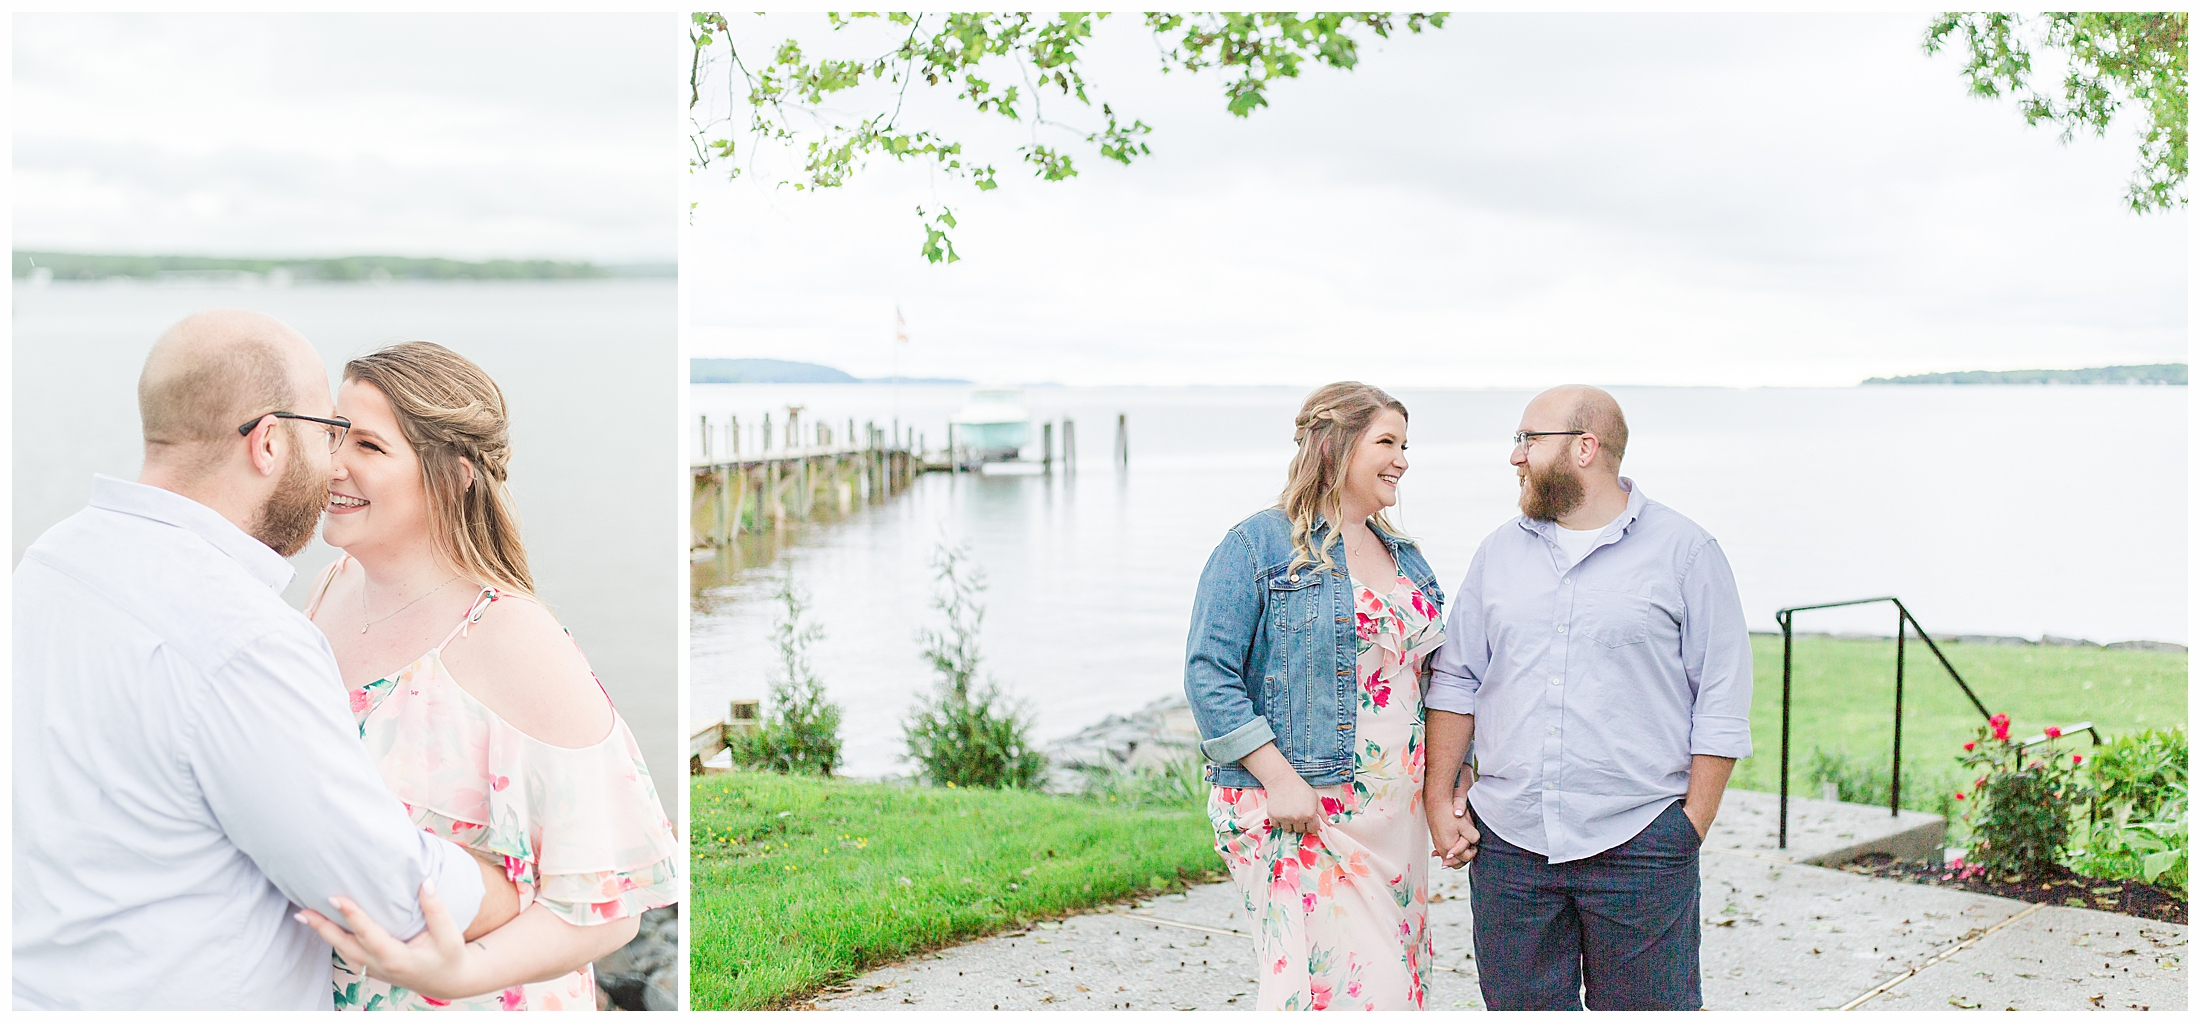 chesapeake-bay-engagement-photographer1.jpg